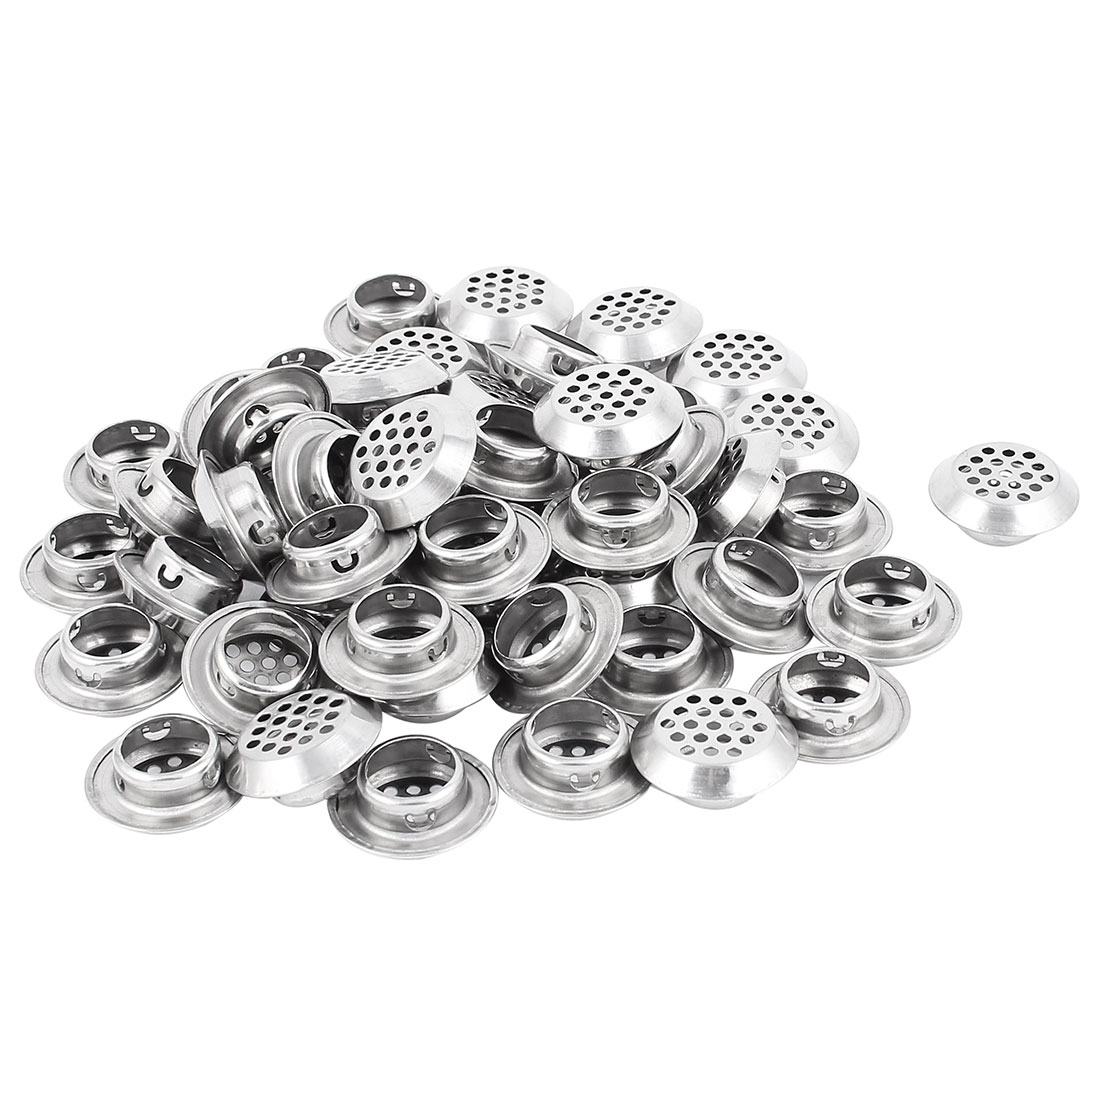 19mm Bottom Dia Round Panel Shoes Cupboard Cabinet Air Vent Louver Cover 50pcs